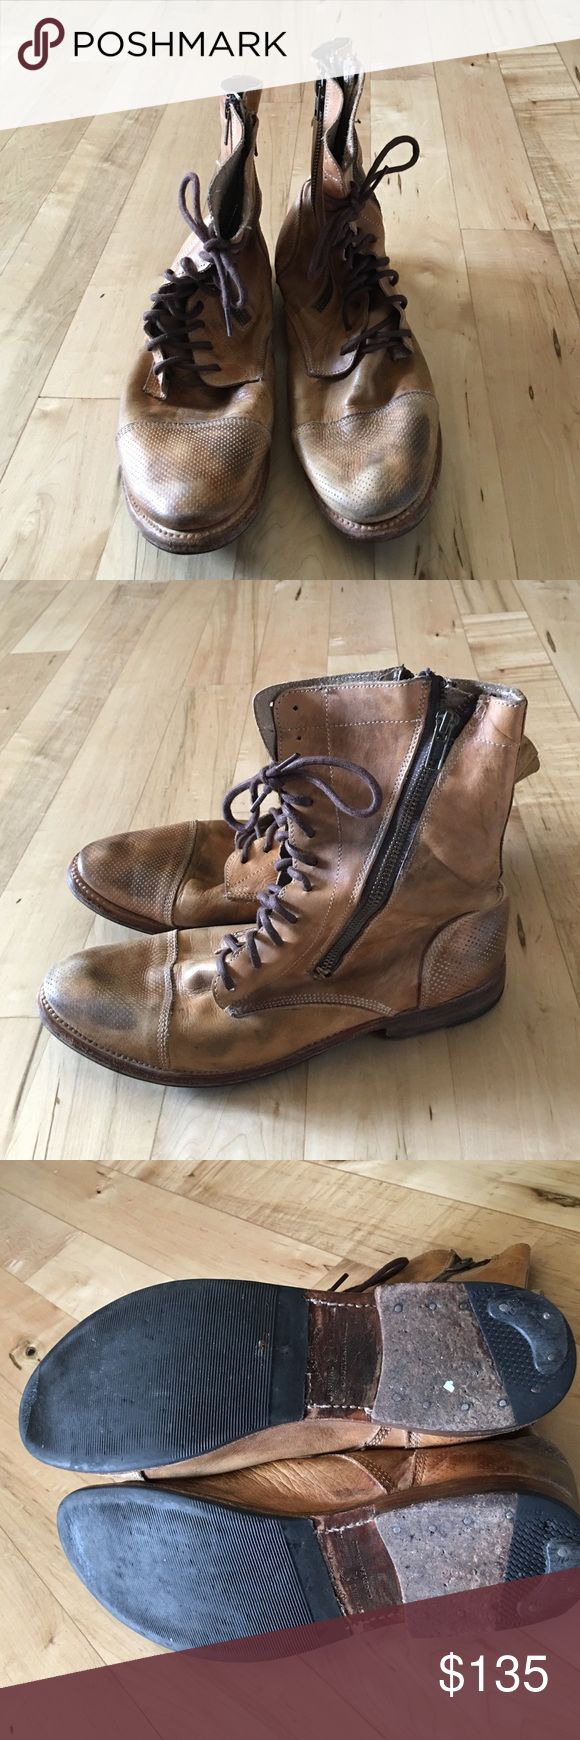 Bed Stu Tabor brown boots size 10 Women's size 10, great condition.  Distressed look so cute! Bed Stu Shoes Combat & Moto Boots